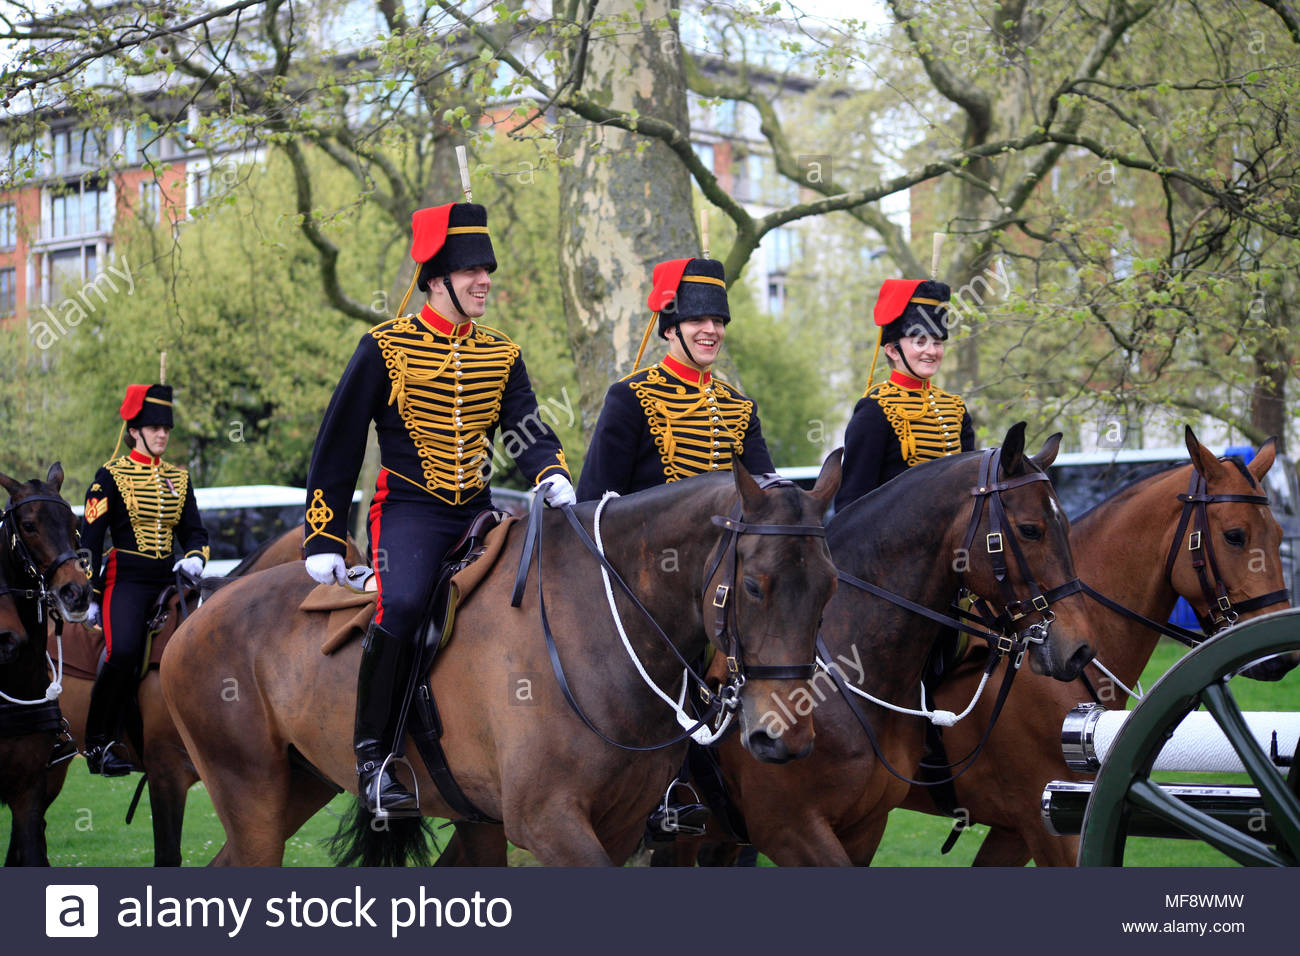 Hyde Park, London. April 24th 2018. The King's troop Royal Horse Artillery and the Honourable Artillery company fire royal salutes in London to welcome the New Royal baby. The Duke and the Duchess of Cambridge's third child.Credit: Patricia Ng'ang'a/Alamy Live News. - Stock Image